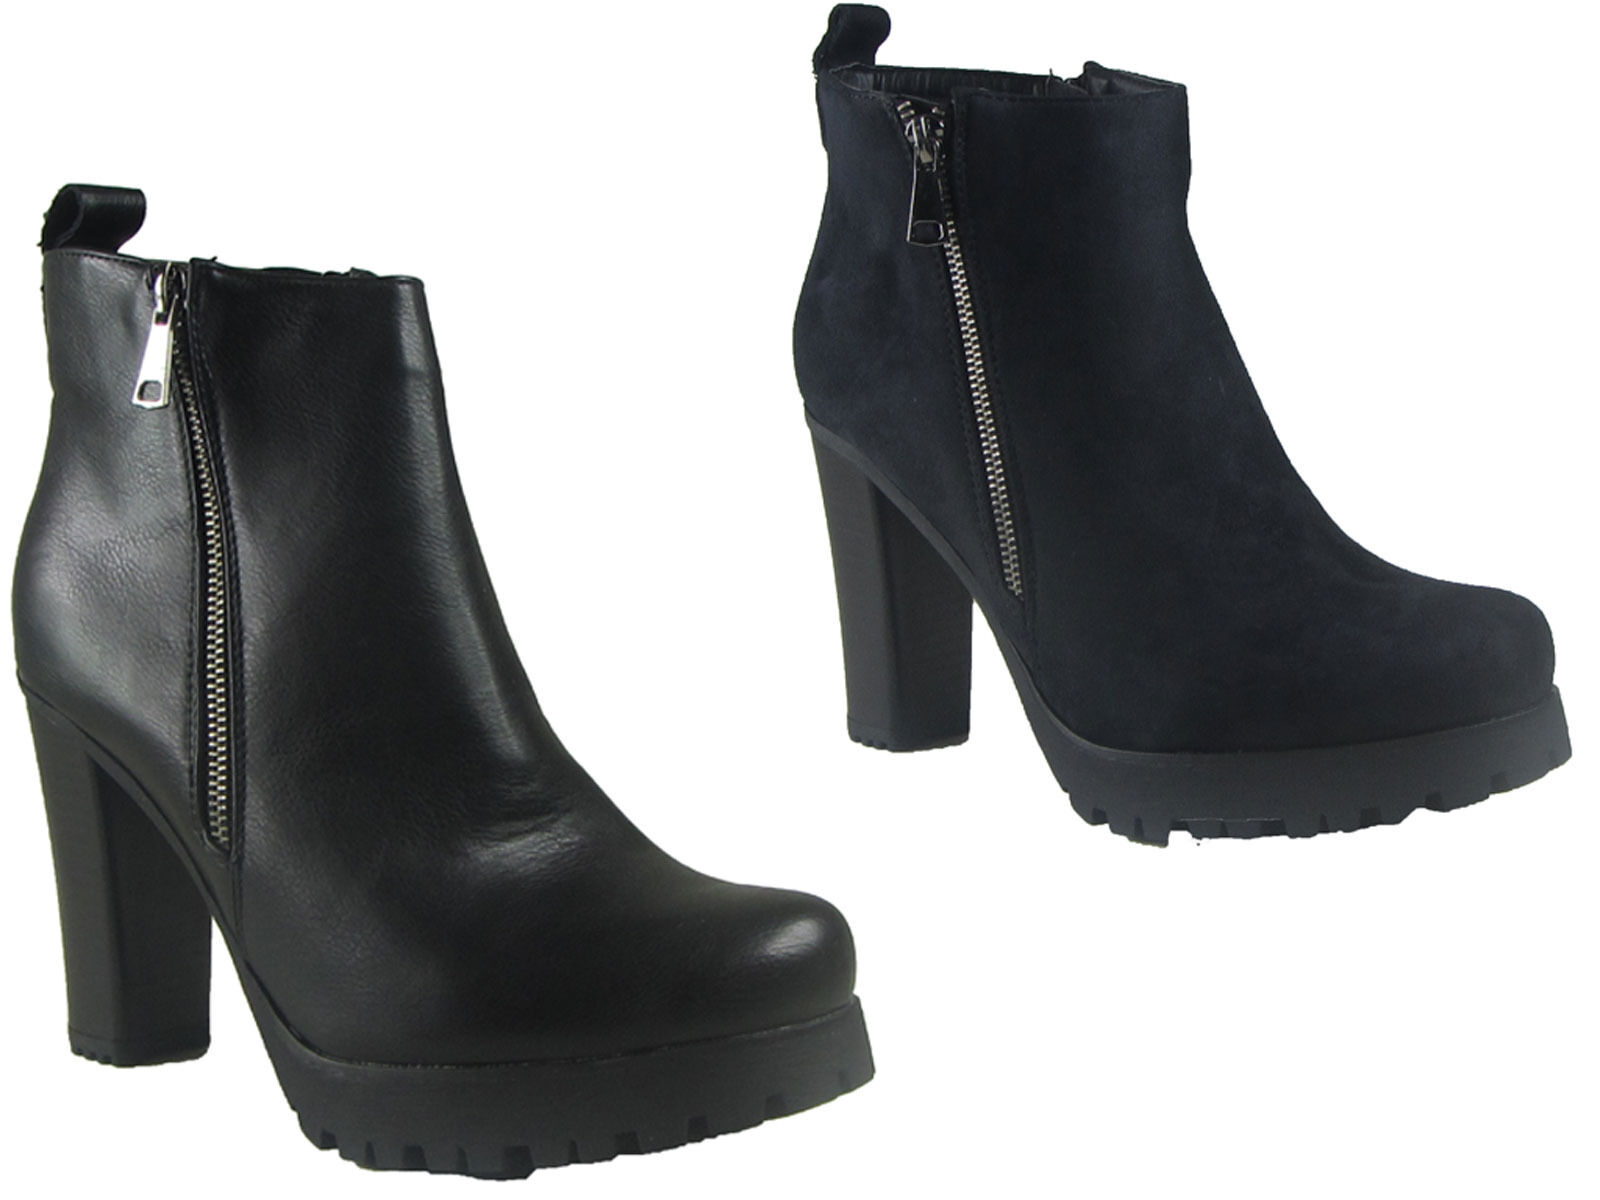 NEW LADIES WOMENS CHUNKY BLOCK HEEL CASUAL OFFICE WORK ANKLE ZIP BOOT SIZE 3-8